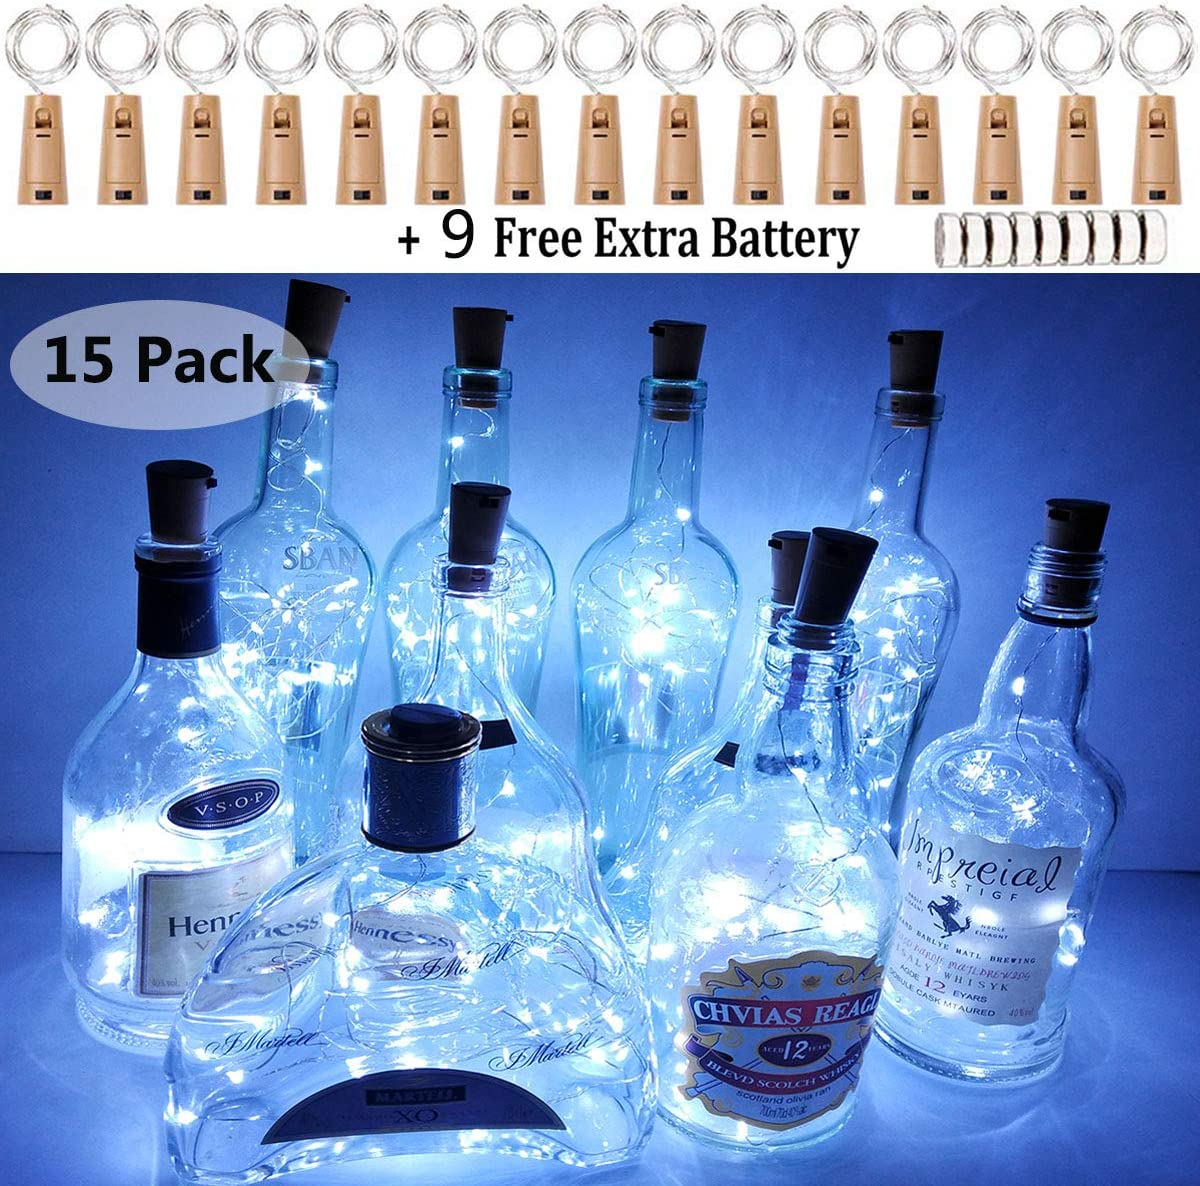 LiyuanQ Wine Bottle Lights with Cork, 15 Pack Battery Operated Cork Lights + 9 PCS Extra Replacement Batteries with Fairy Mini String Lights for Party Wedding Decor Cool White (Bottle not Included)